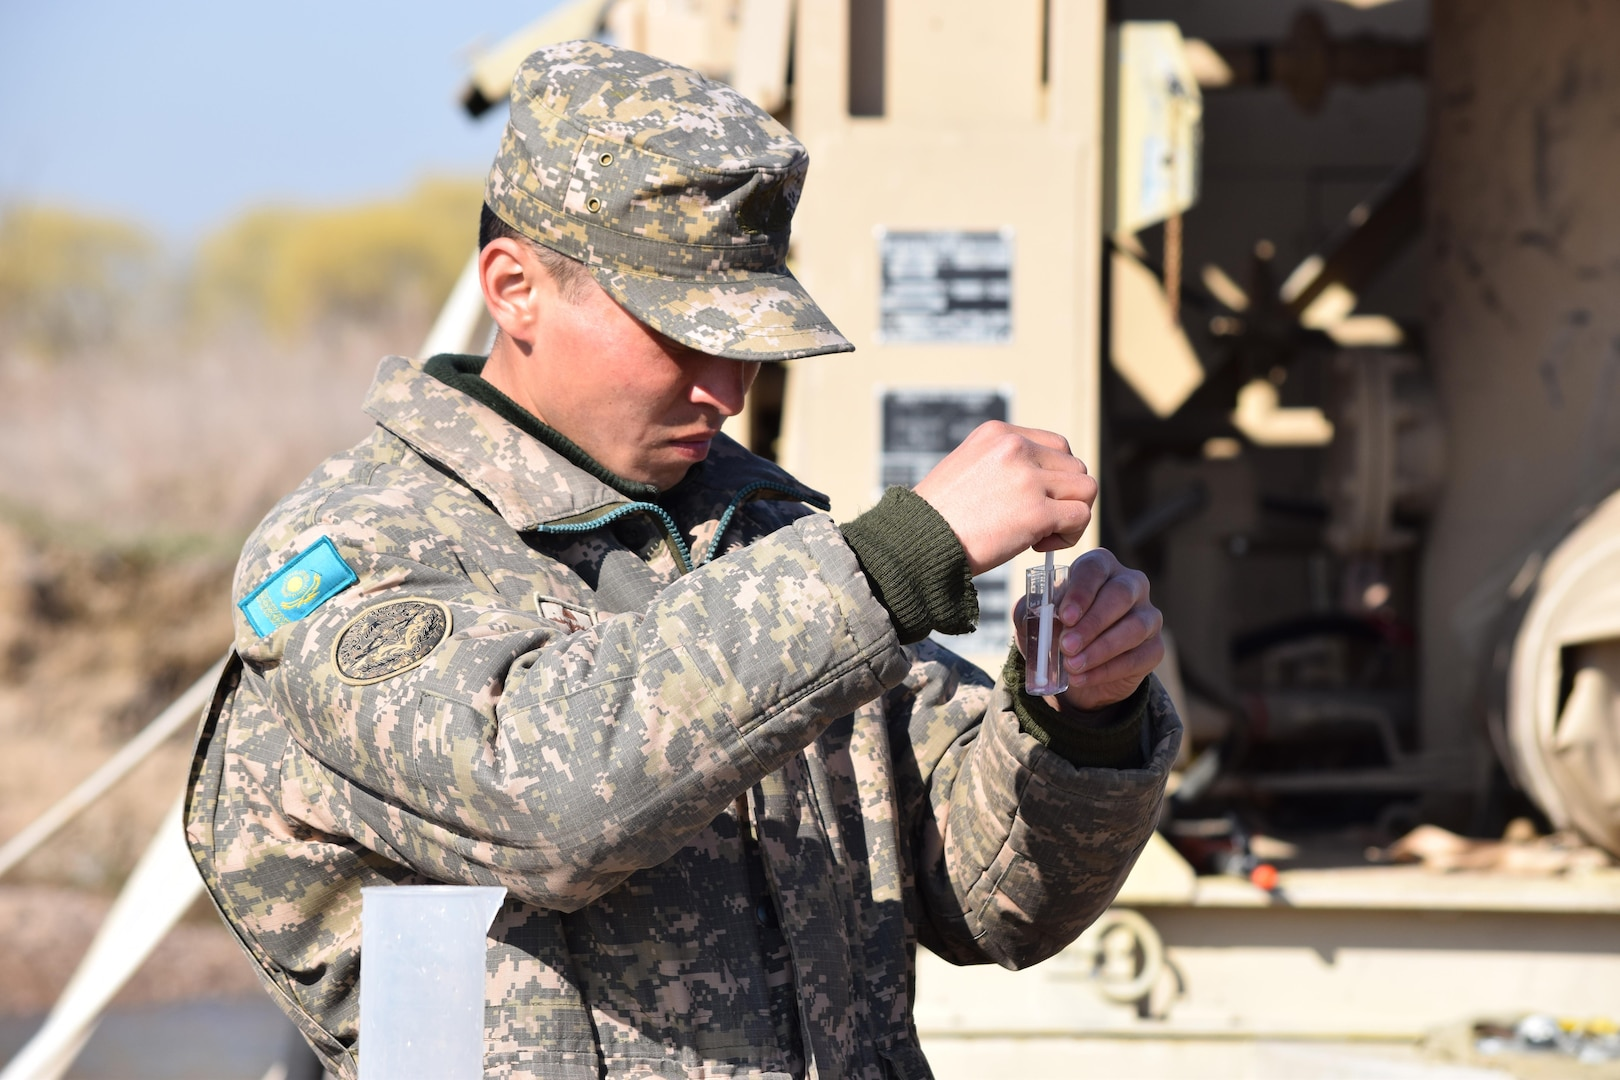 A soldier with the Kazakhstan Peacekeeping Battalion tests the level of chlorine in a beaker of purified water during a peacekeeping operations scenario for Steppe Eagle Koktem Apr. 9, 2017, at Illisky Training Center, Kazakhstan.